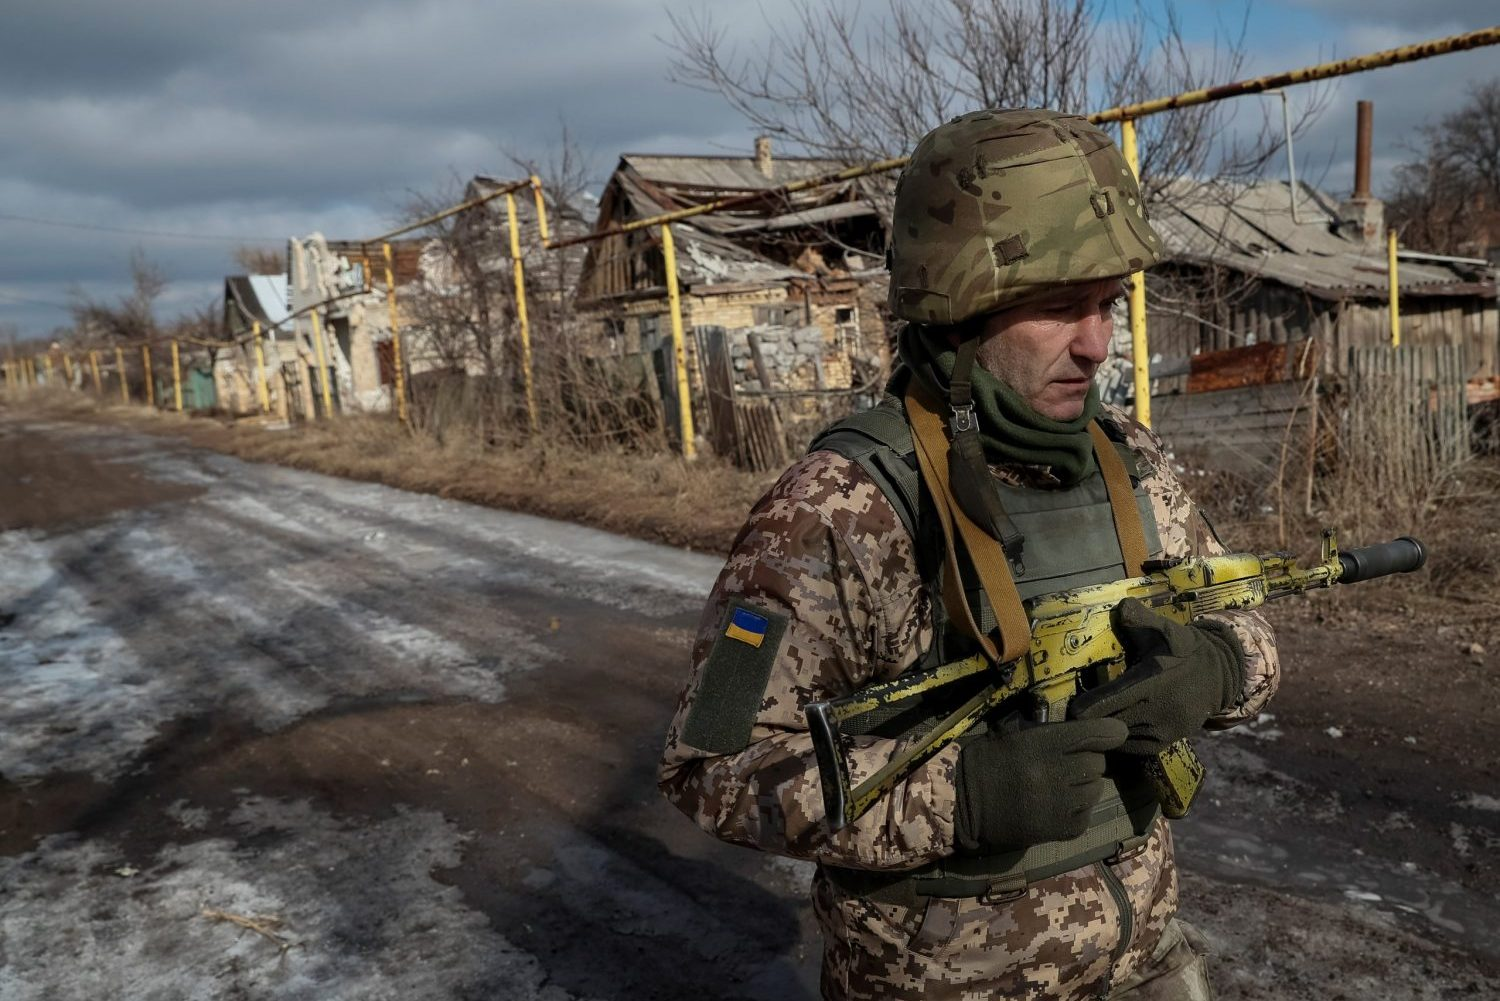 The Azov Regiment has not depoliticized